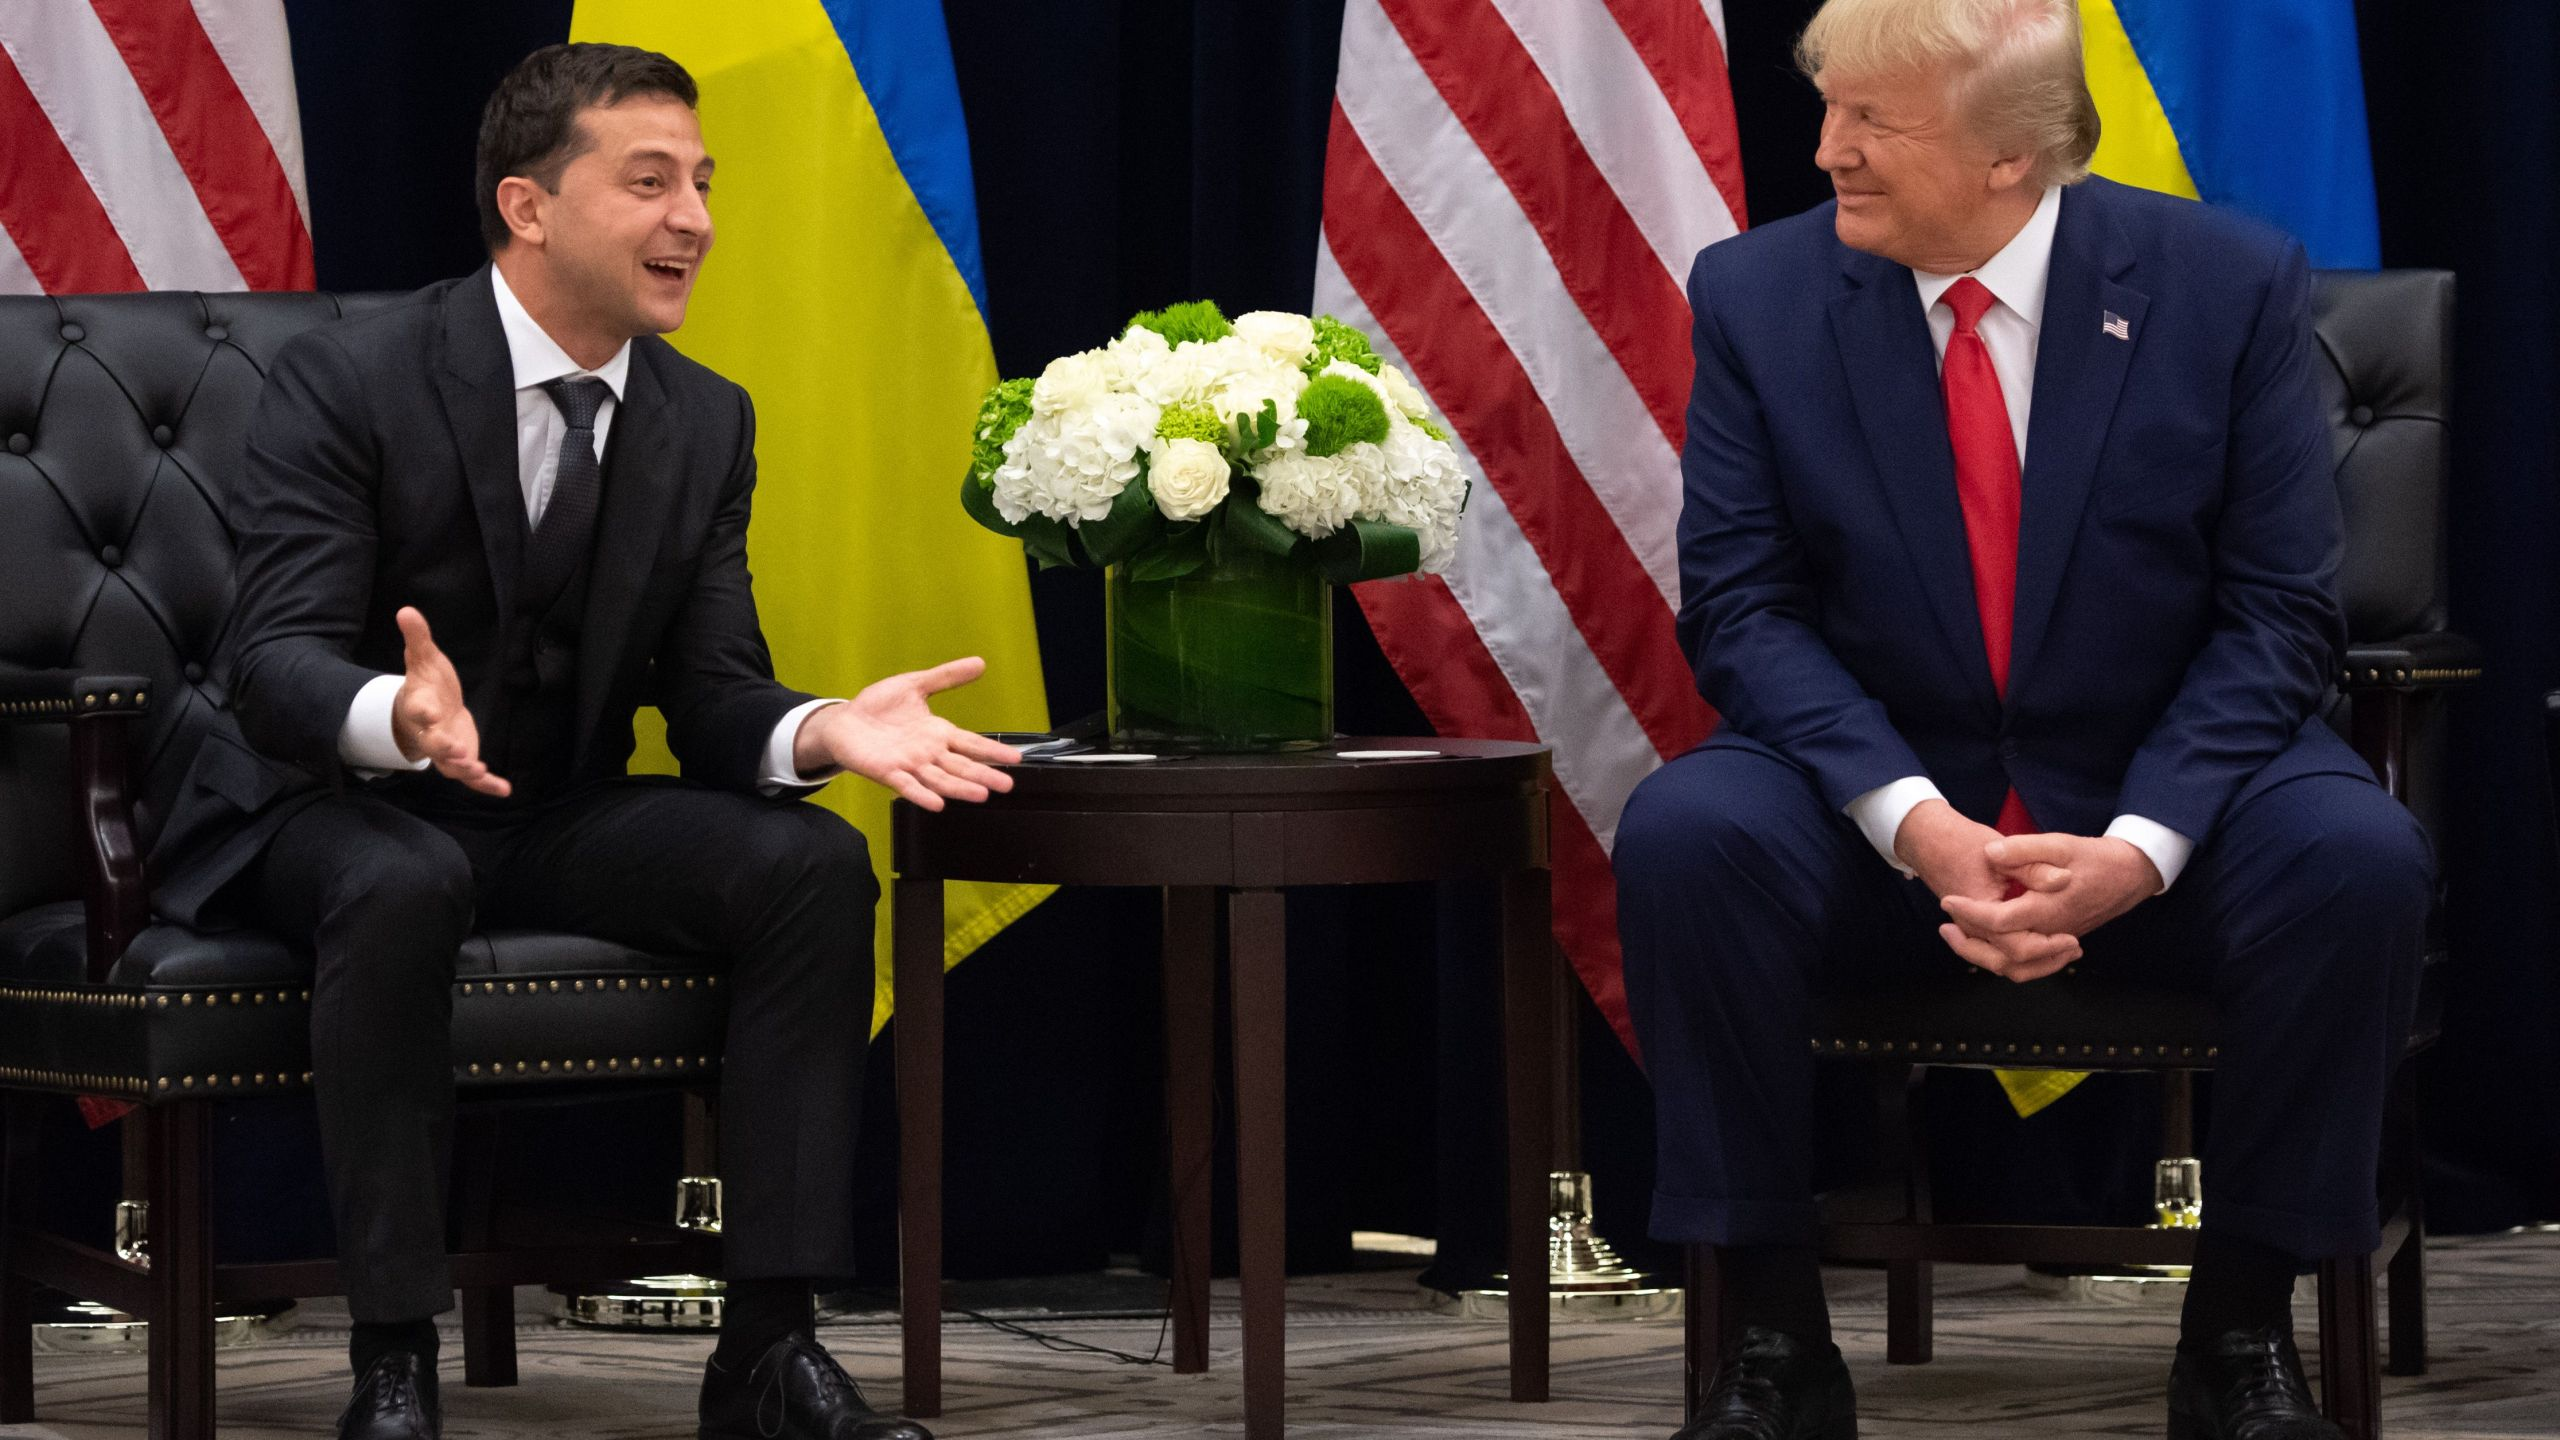 U.S. President Donald Trump and Ukrainian President Volodymyr Zelensky meet in New York on Sept. 25, 2019. (Credit: SAUL LOEB/AFP/Getty Images)